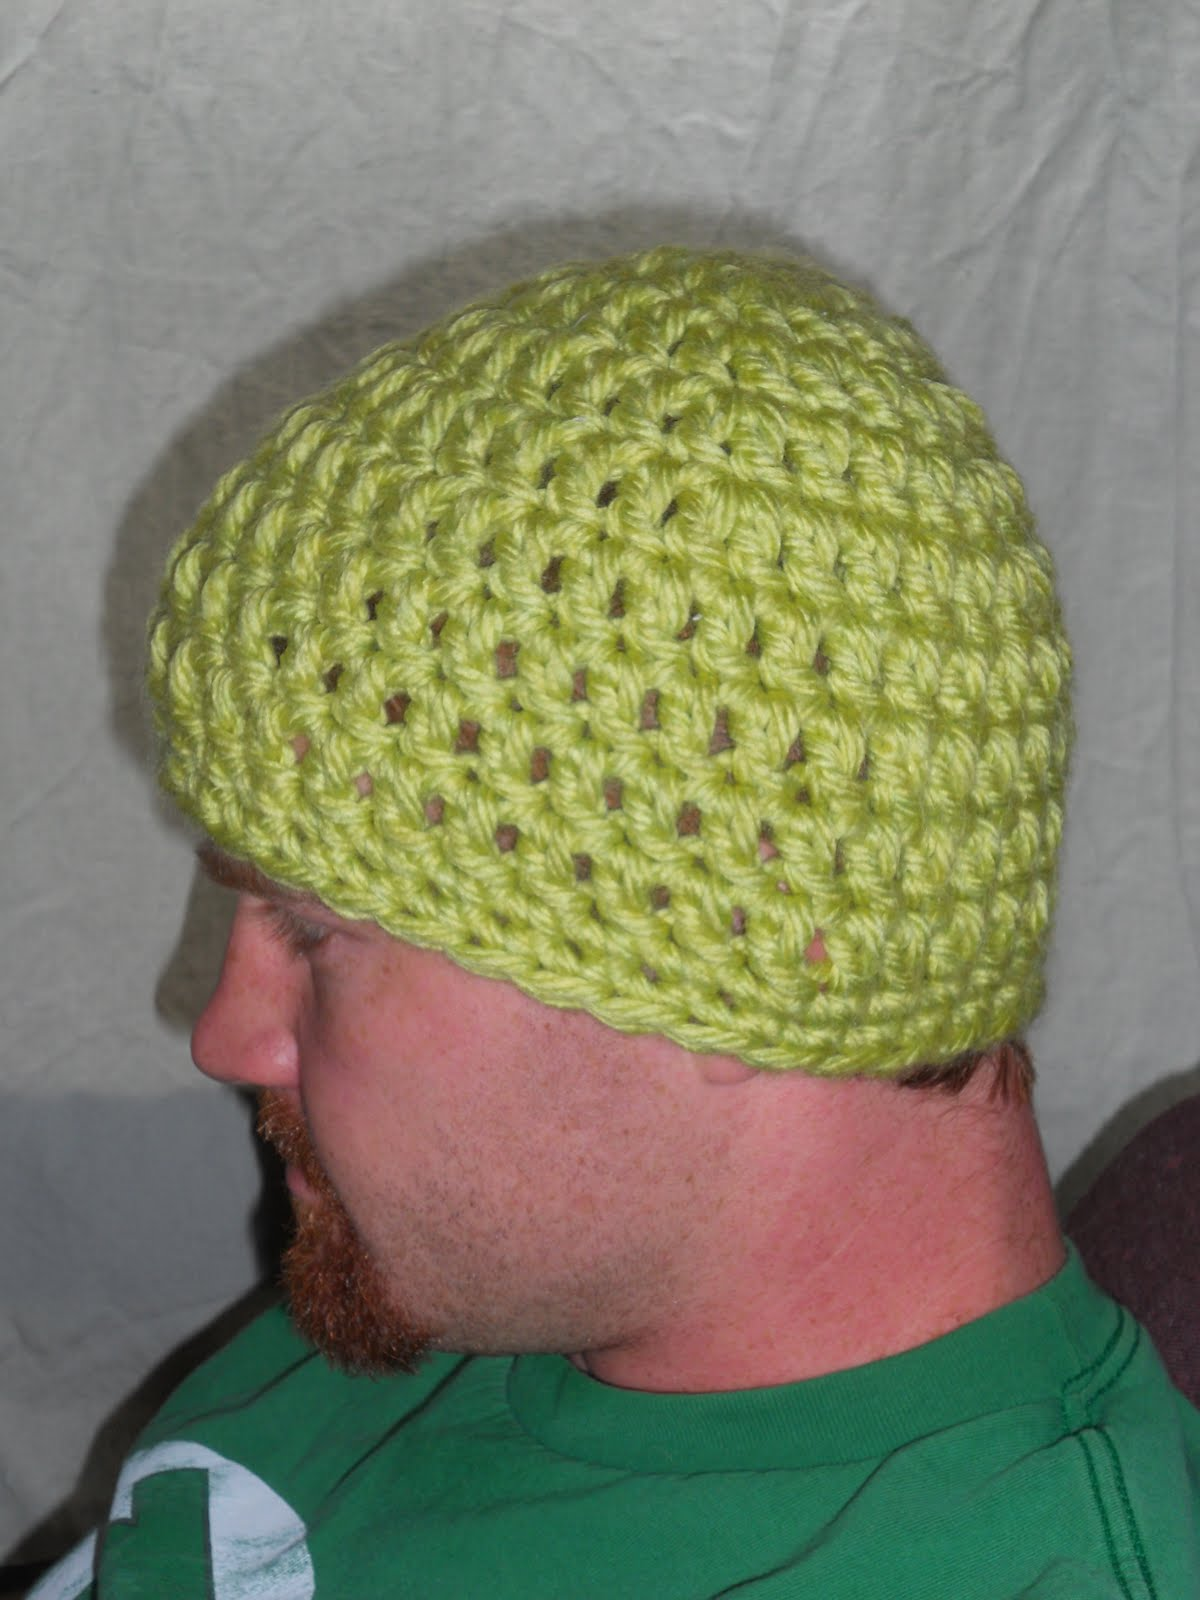 Free Crochet Pattern Using Super Bulky Yarn : Crafty Woman Creations: Free Basic Super Bulky Beanie Pattern